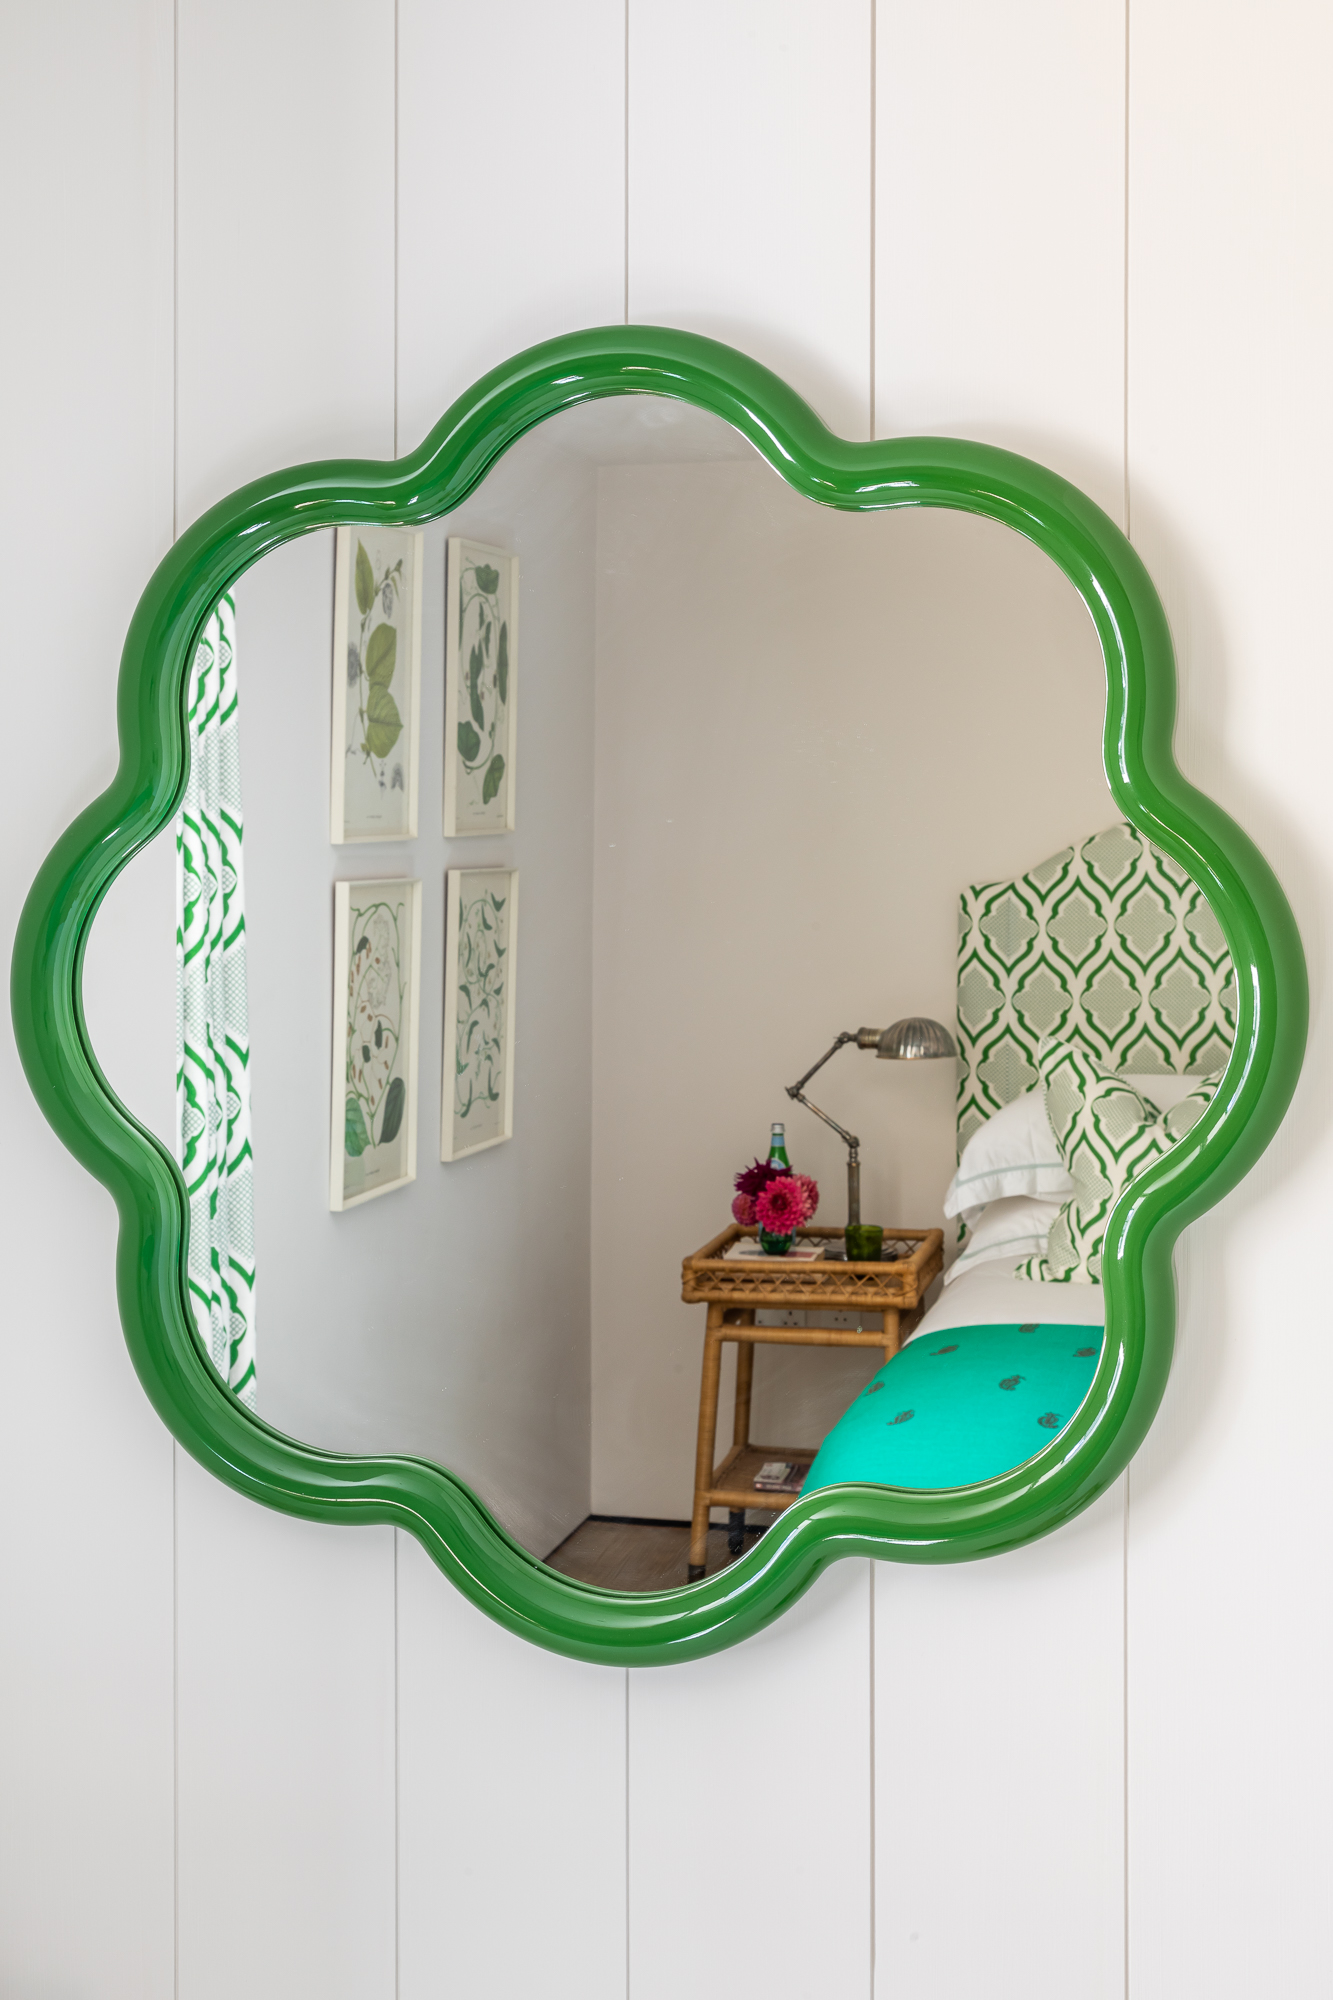 jonathan bond, interior photographer, green framed mirror marnhull